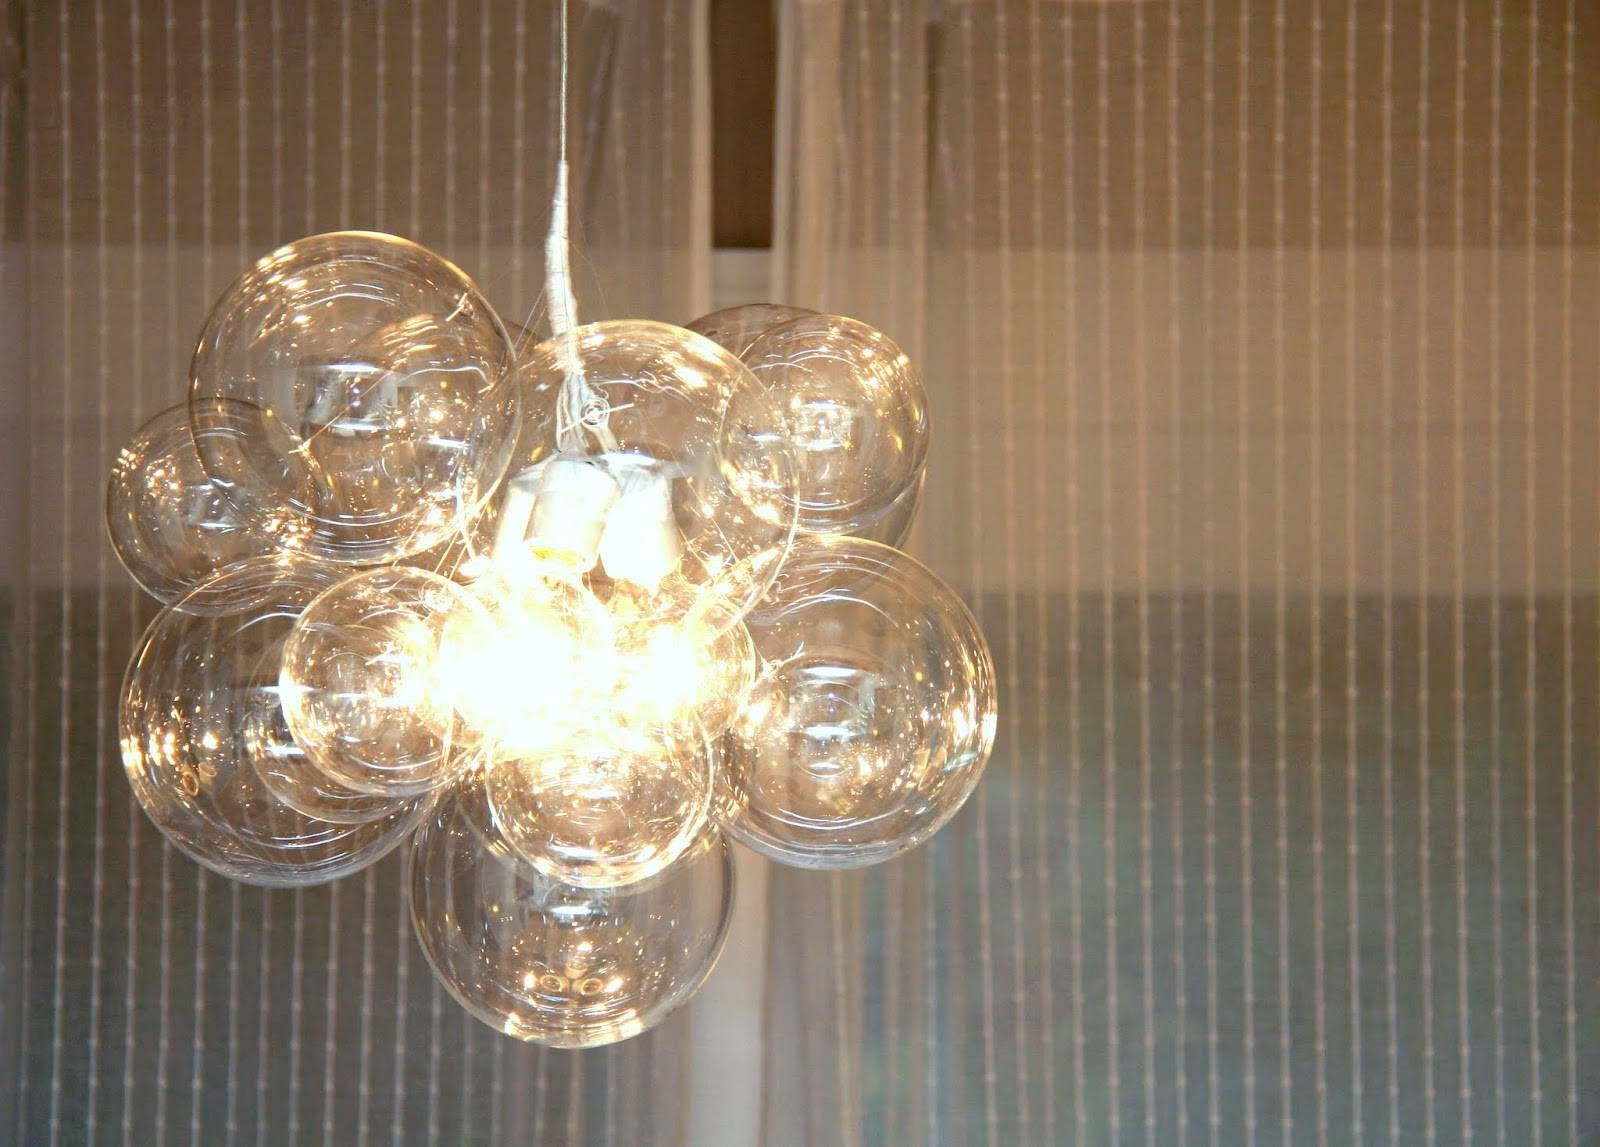 Chandeliers Design : Fabulous Img Glass Ball Chandelier Throughout Bubble Pendant Light Fixtures (View 9 of 15)